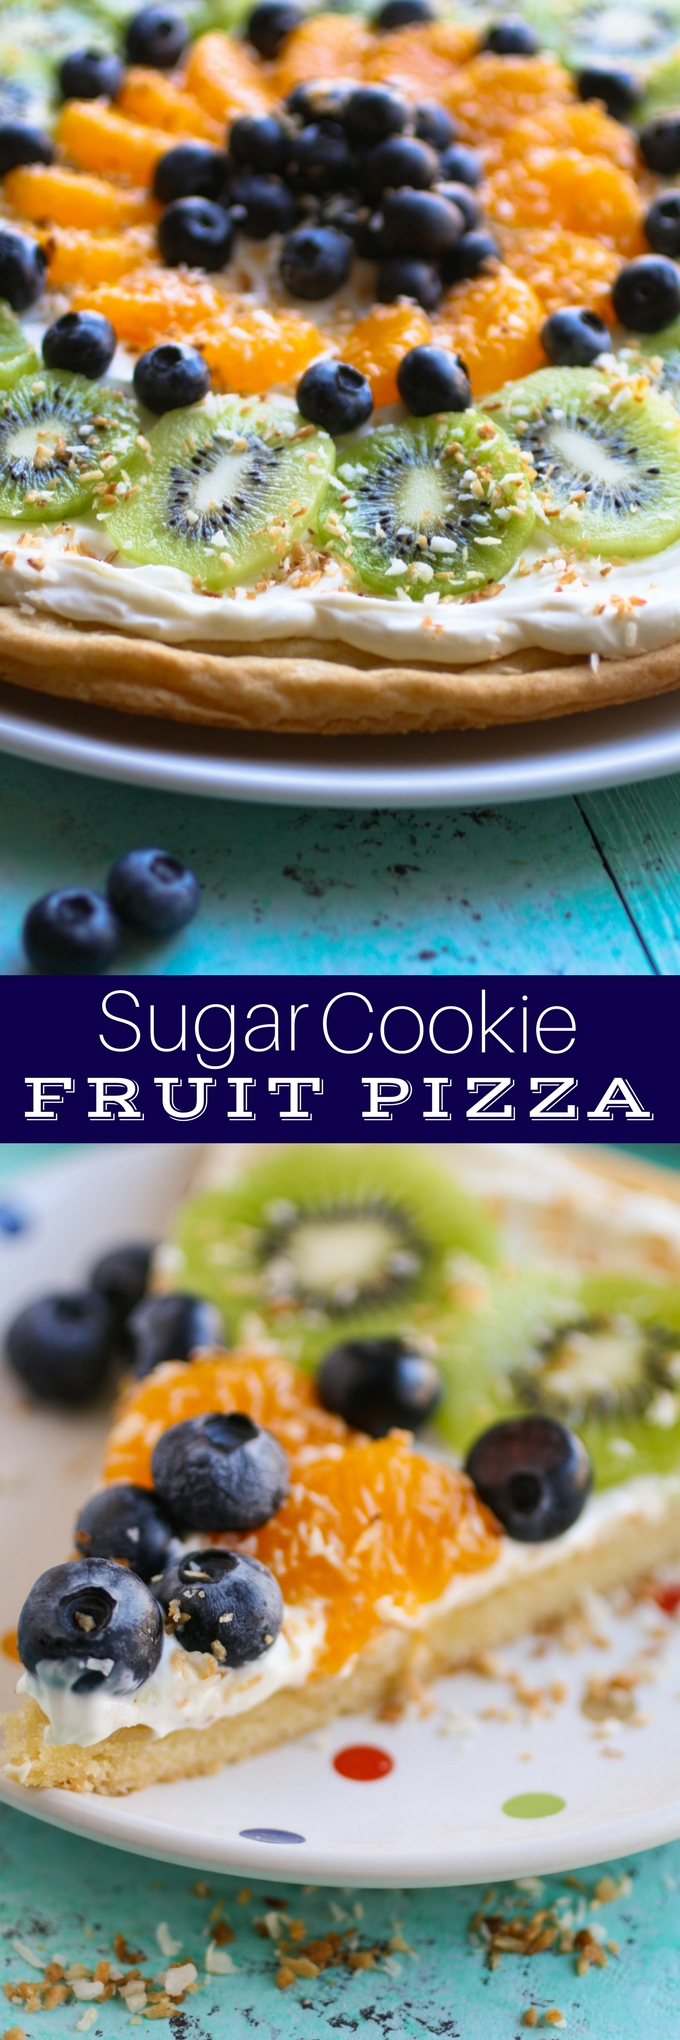 Sugar Cookie Fruit Pizza makes a fun dessert for any get together. It's an easy-to-make dessert that everyone will love!